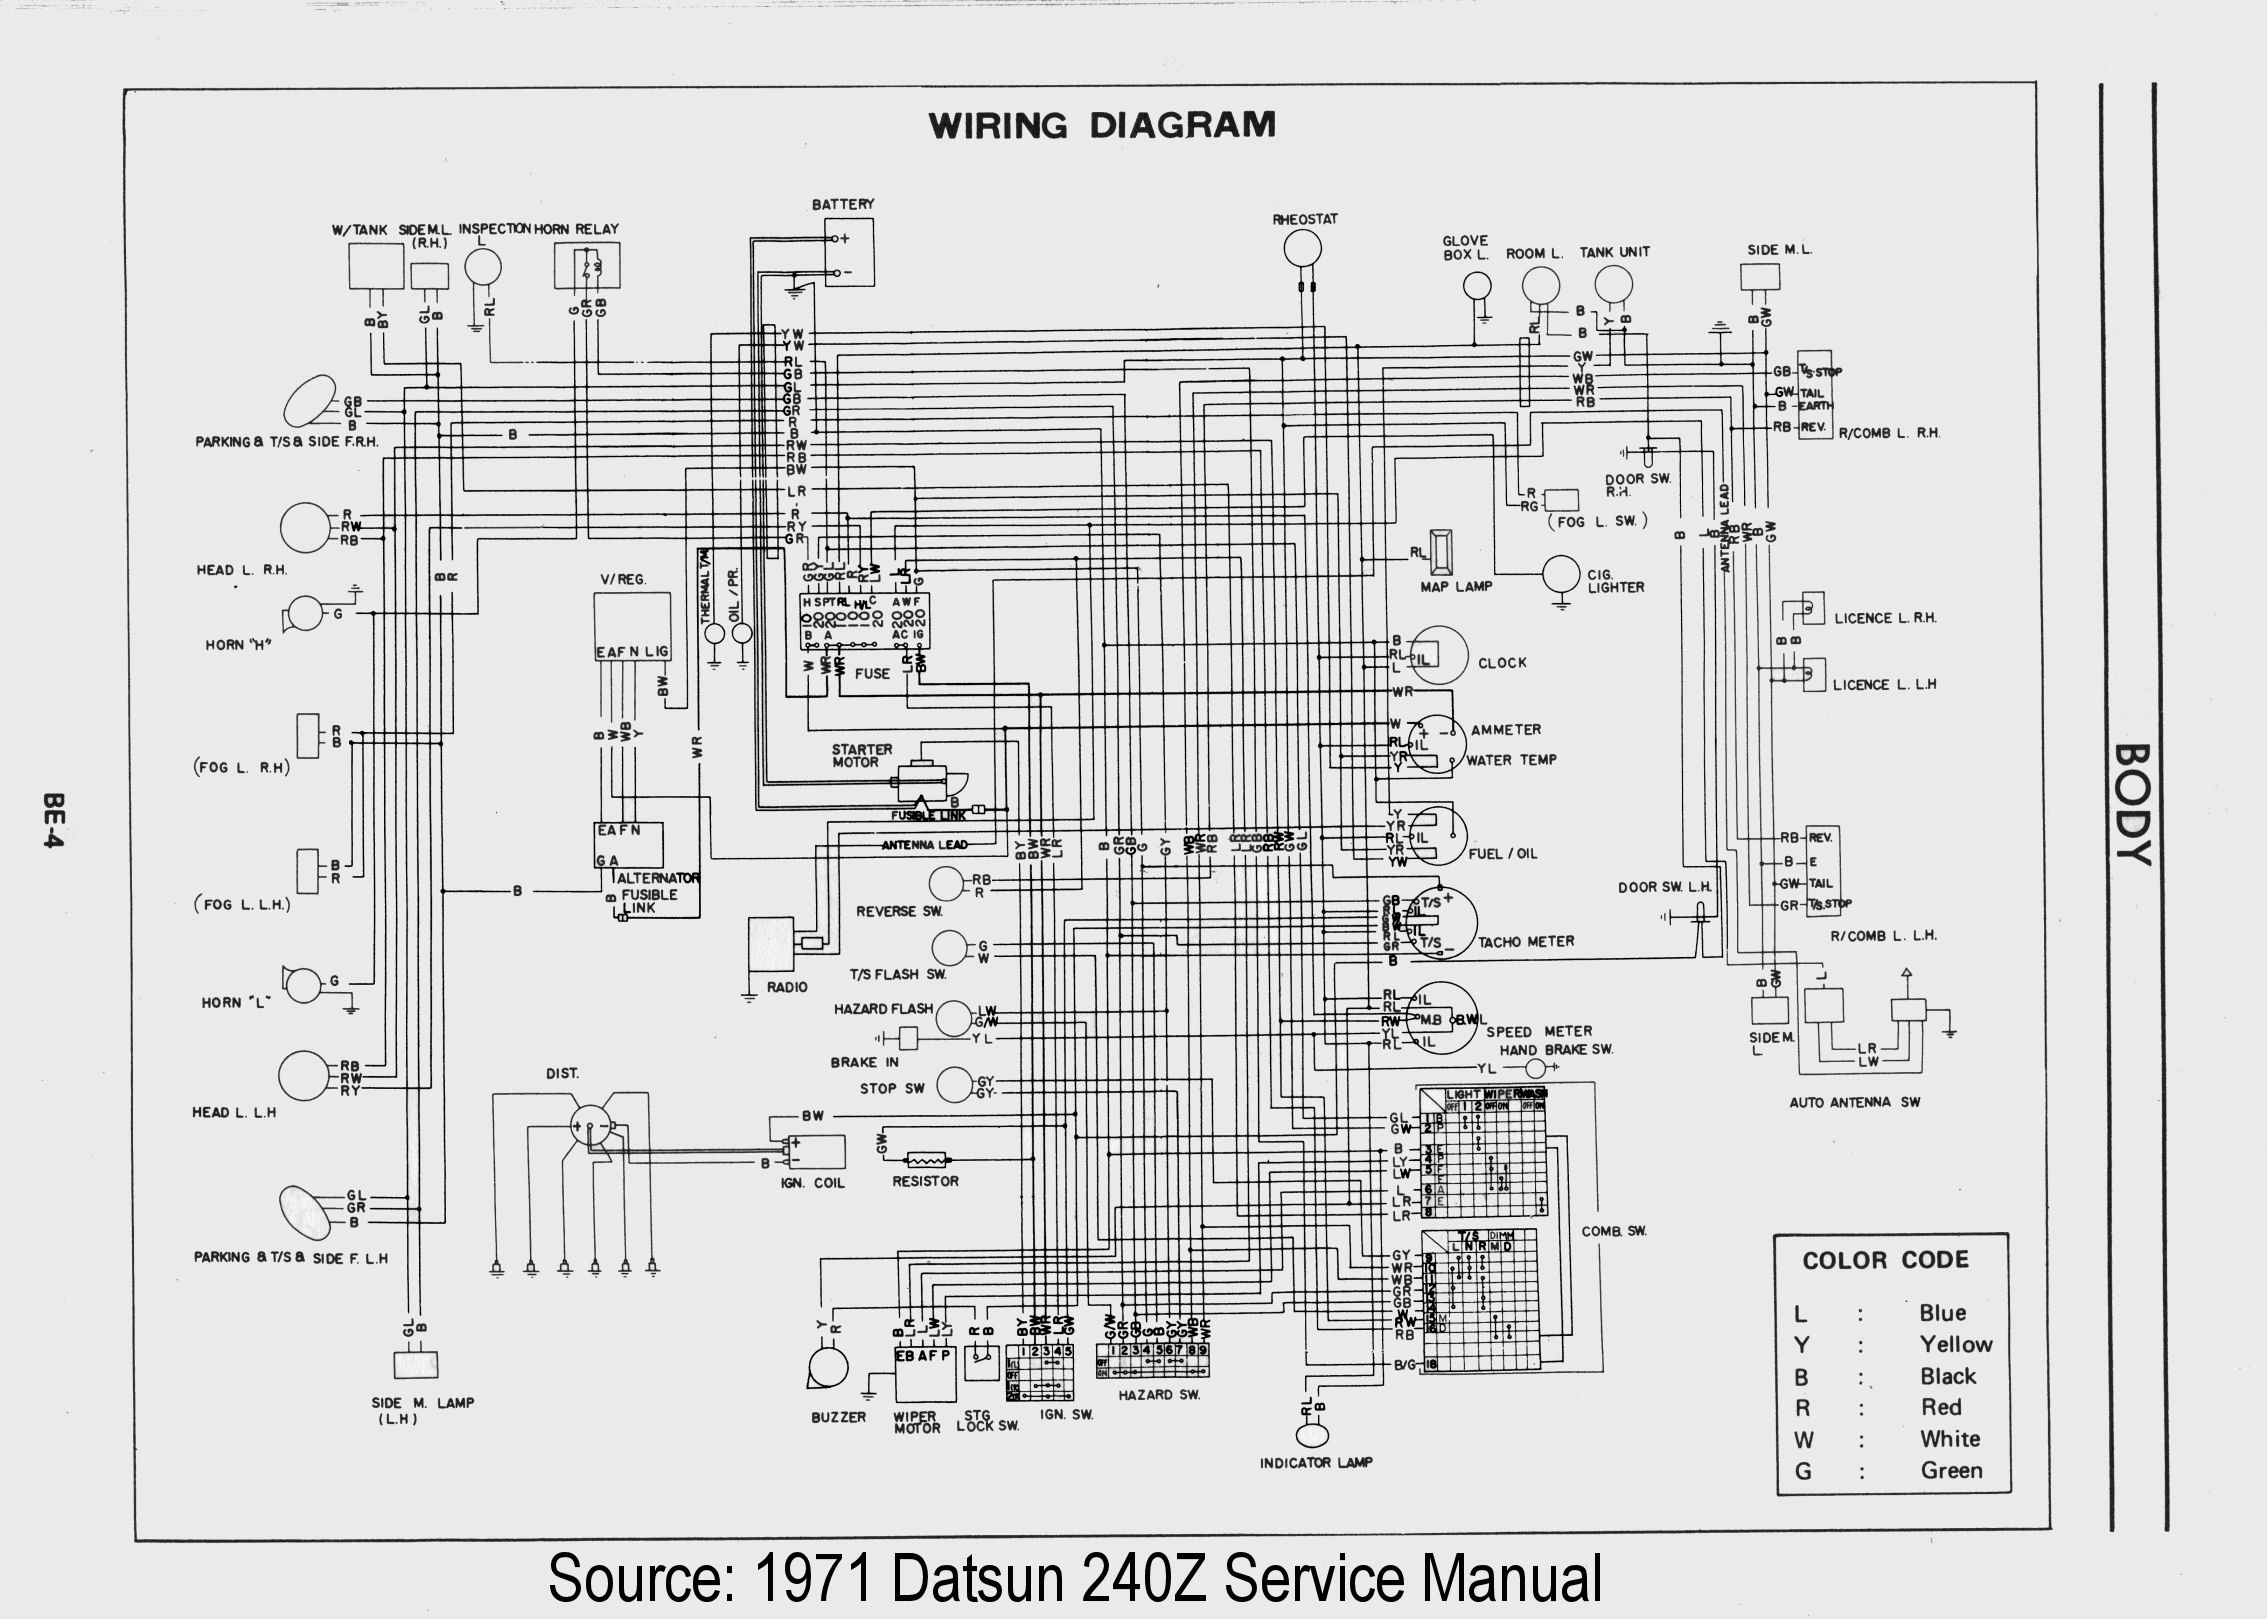 Wiring Diagram HiRes 2 240z wiring diagram 280z wiring diagram \u2022 wiring diagrams j 1978 datsun 280z wiring harness diagram at reclaimingppi.co